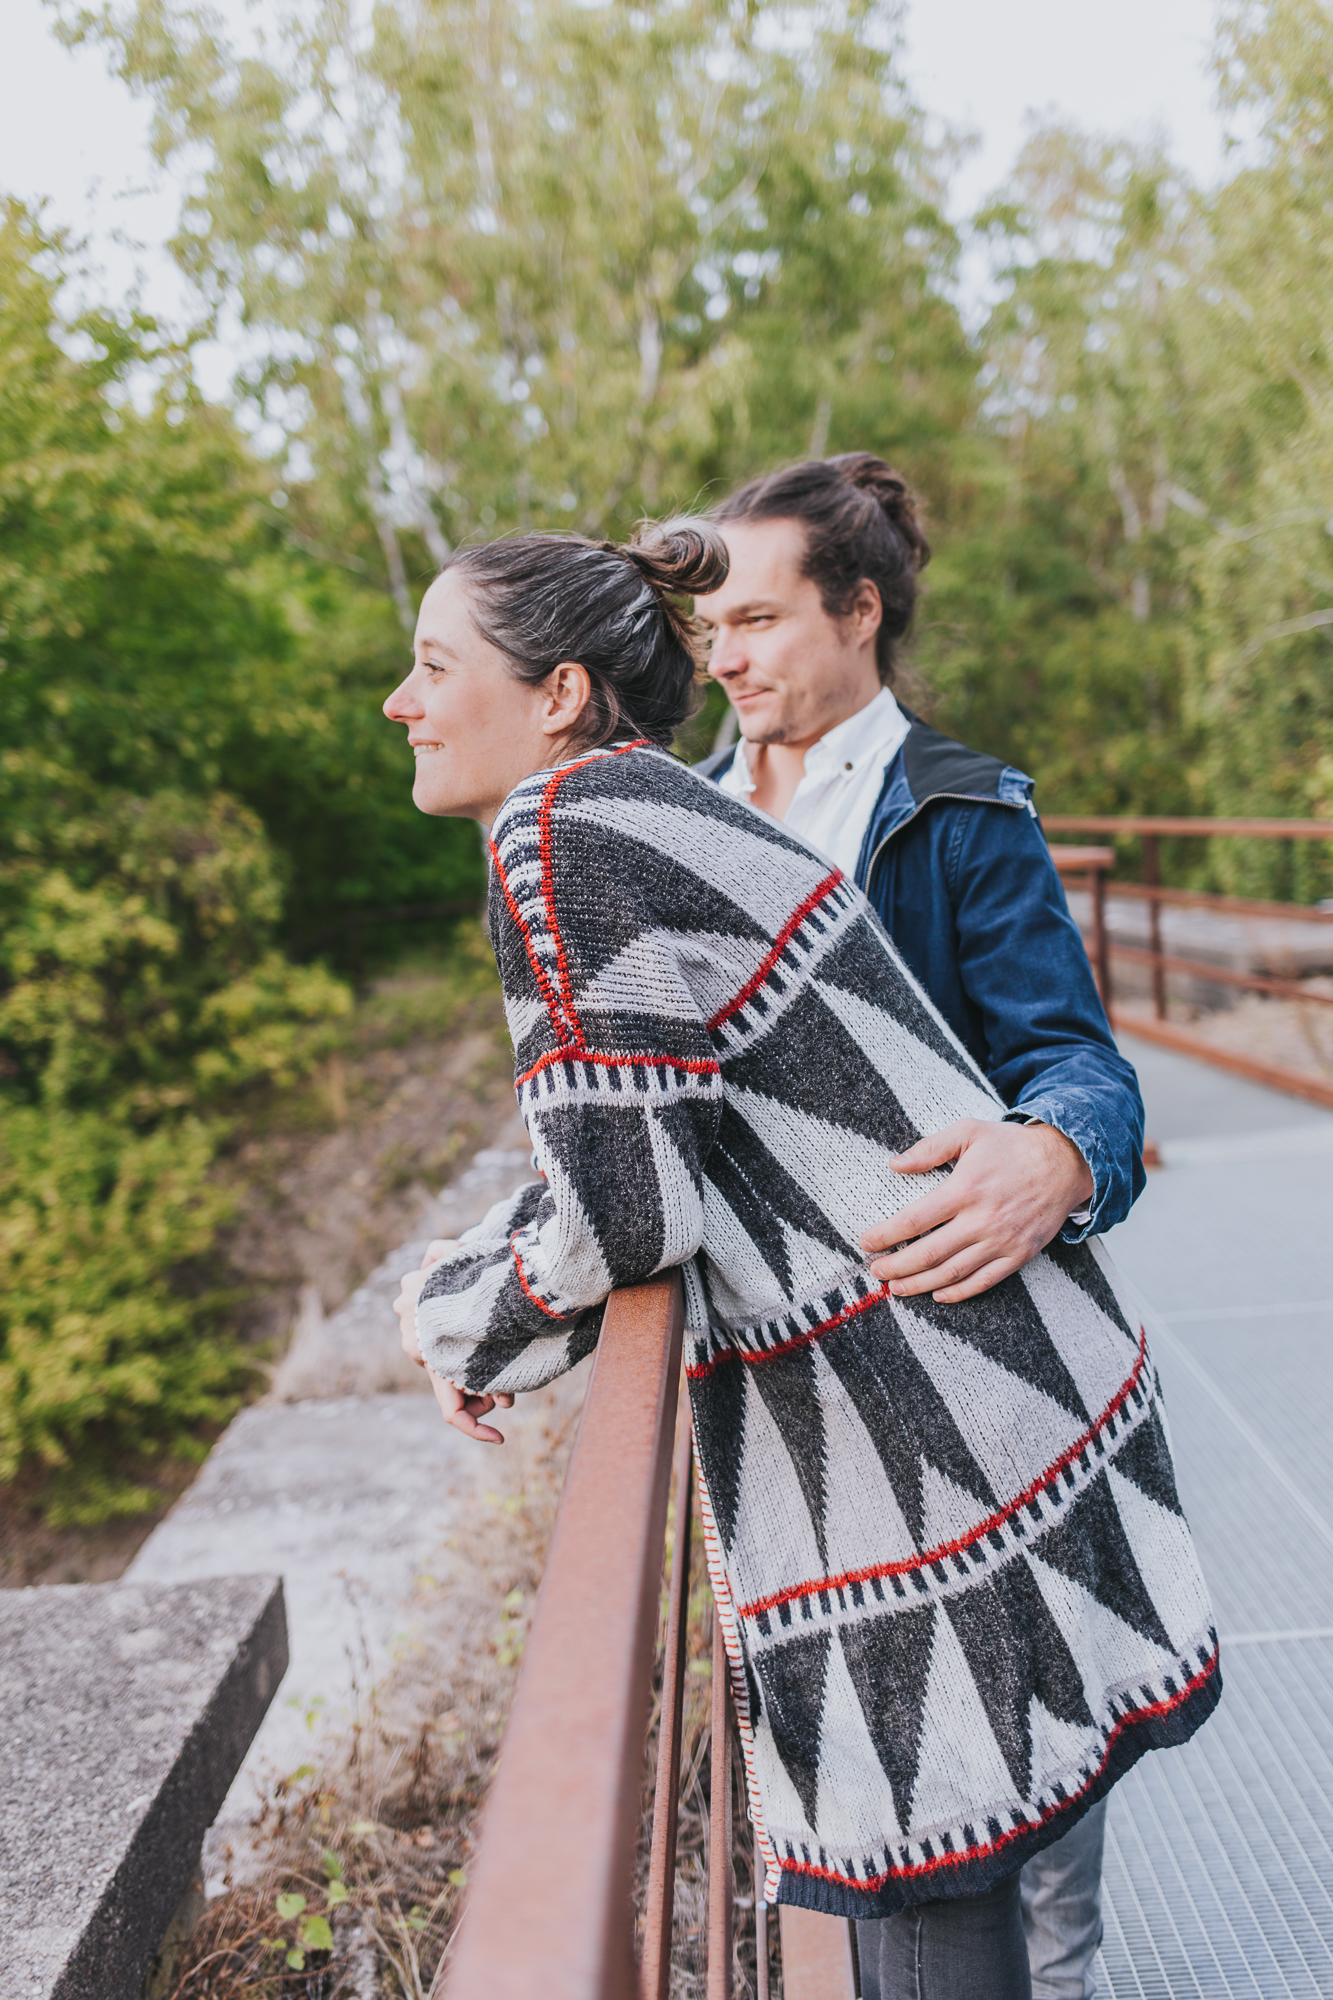 Captured in 2018 on Sep 26 at Schöneberger Südgelände at Babybauch Steph und Daniel  by Laura Kiessling Photography